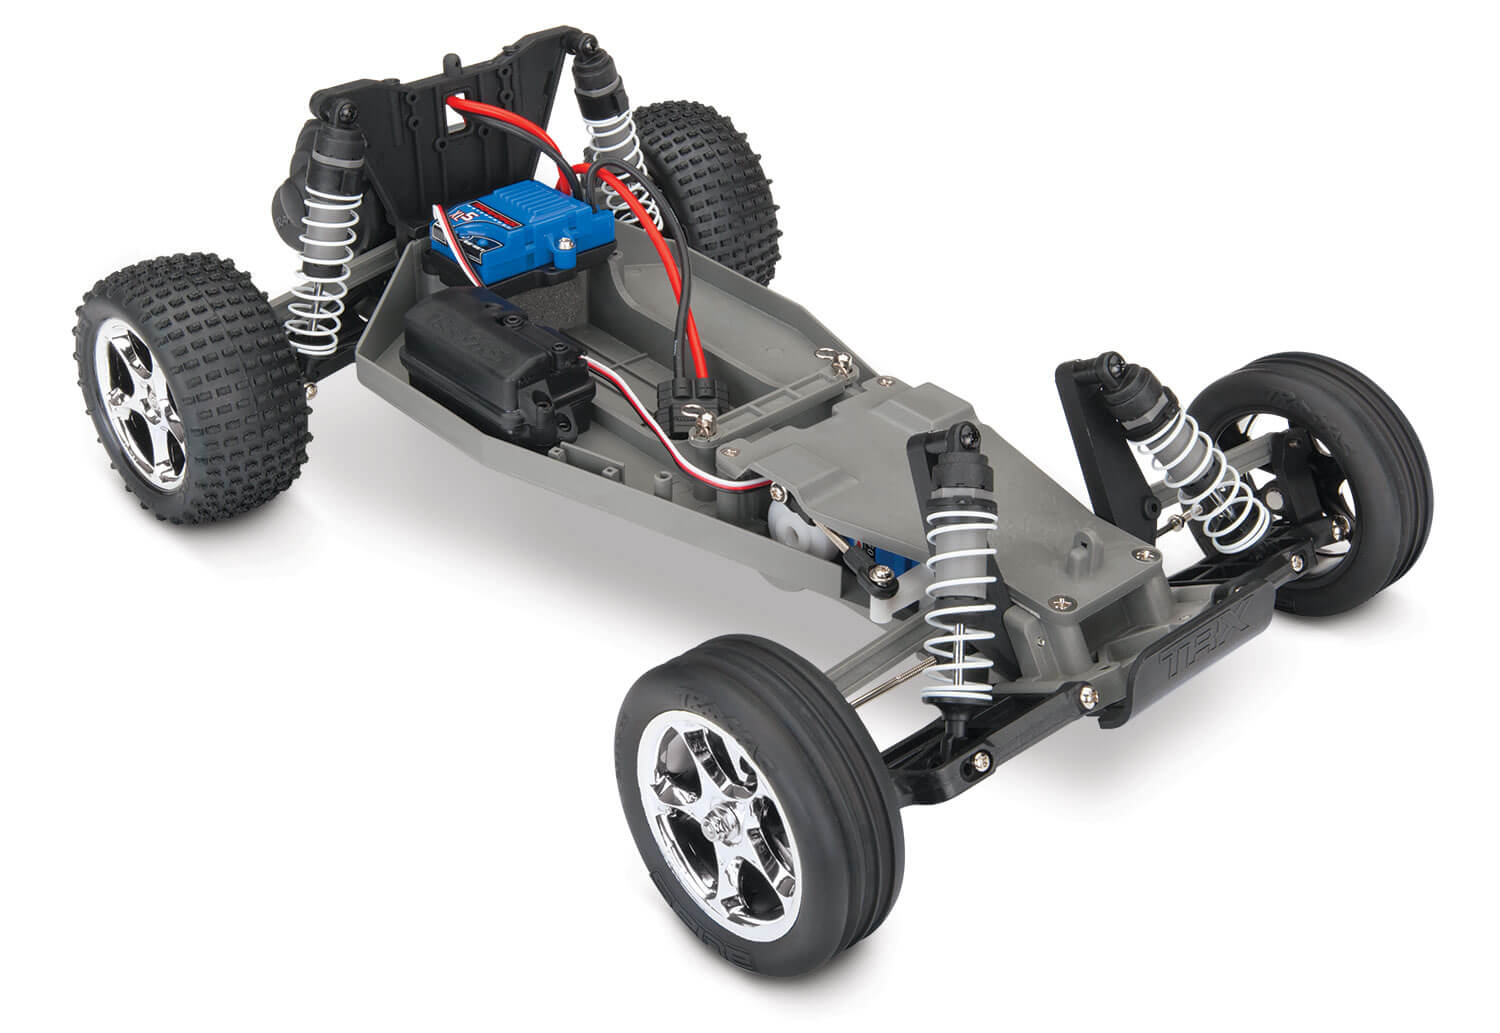 24054-4-bandit-chassis-3qtr